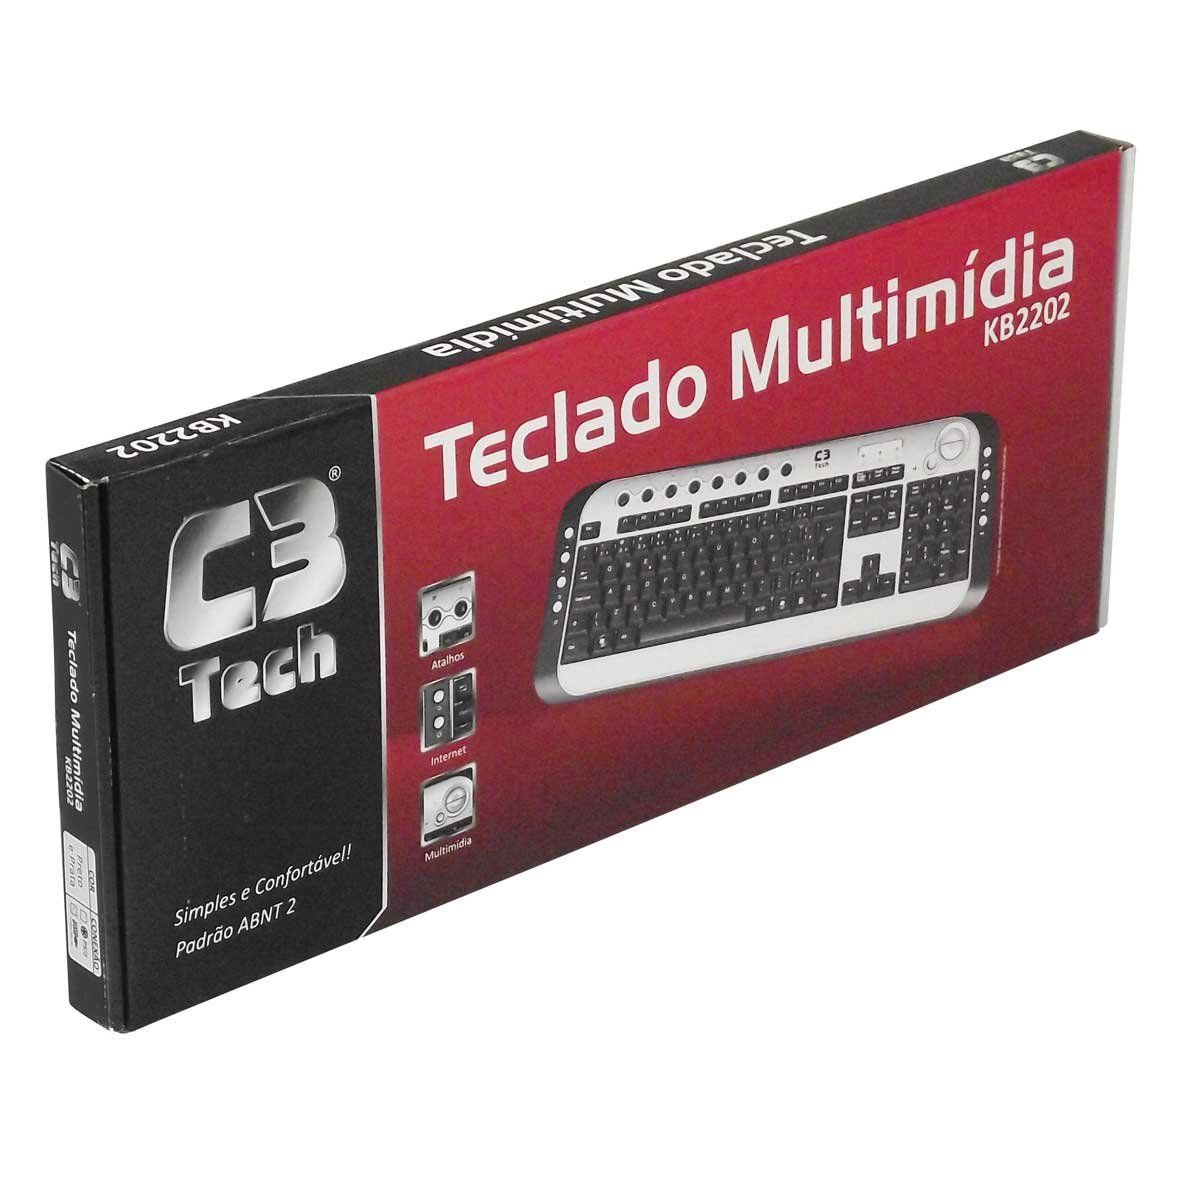 Teclado USB Multimídia Slim Preto C3tech KB2202-2 BK